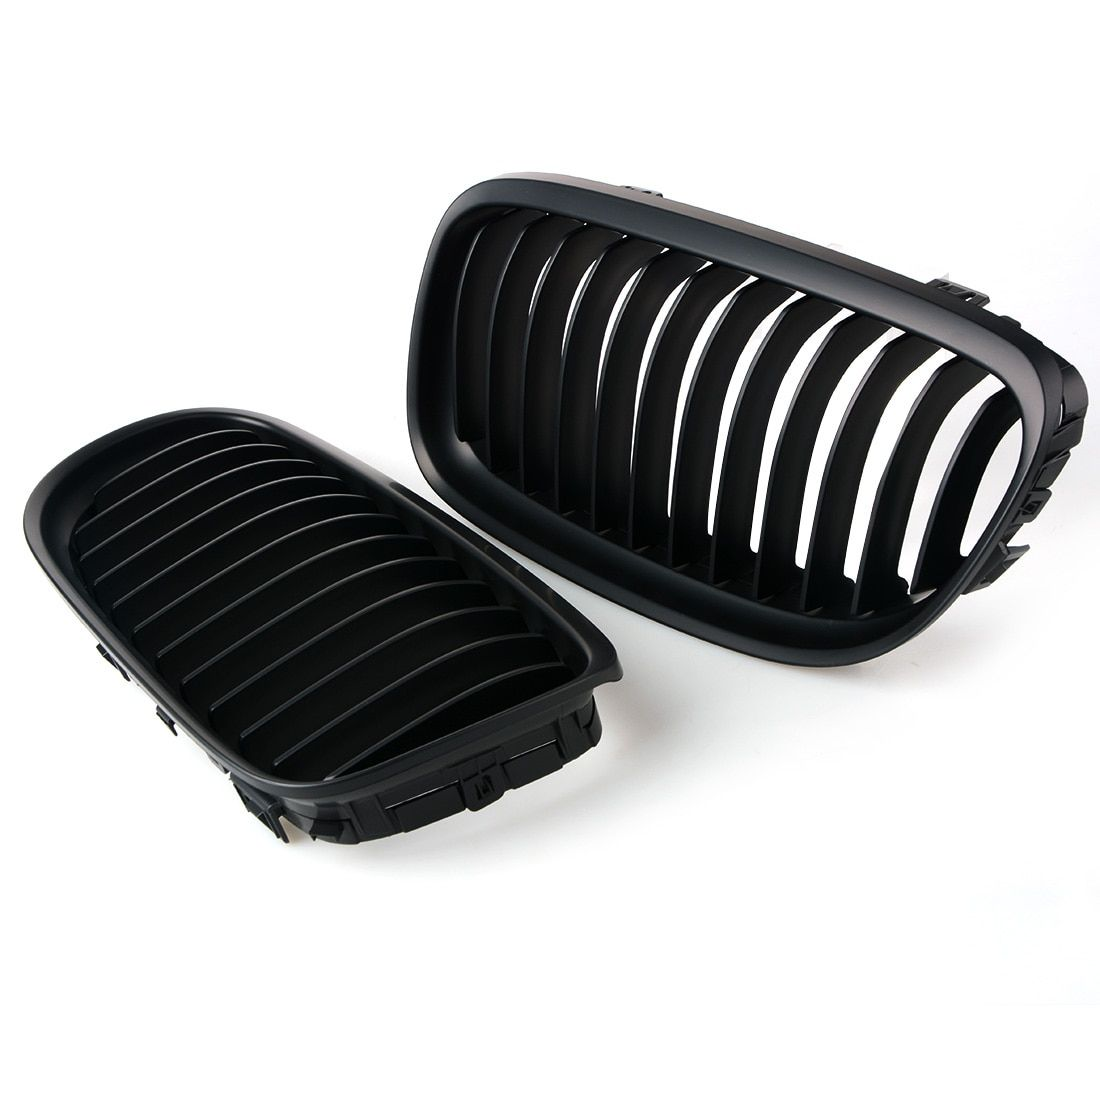 1 Pair Car styling Grill for BMW 3-serise E90 LCI Sedan Matte Black Front Kidney Racing Grille Grills 09-11